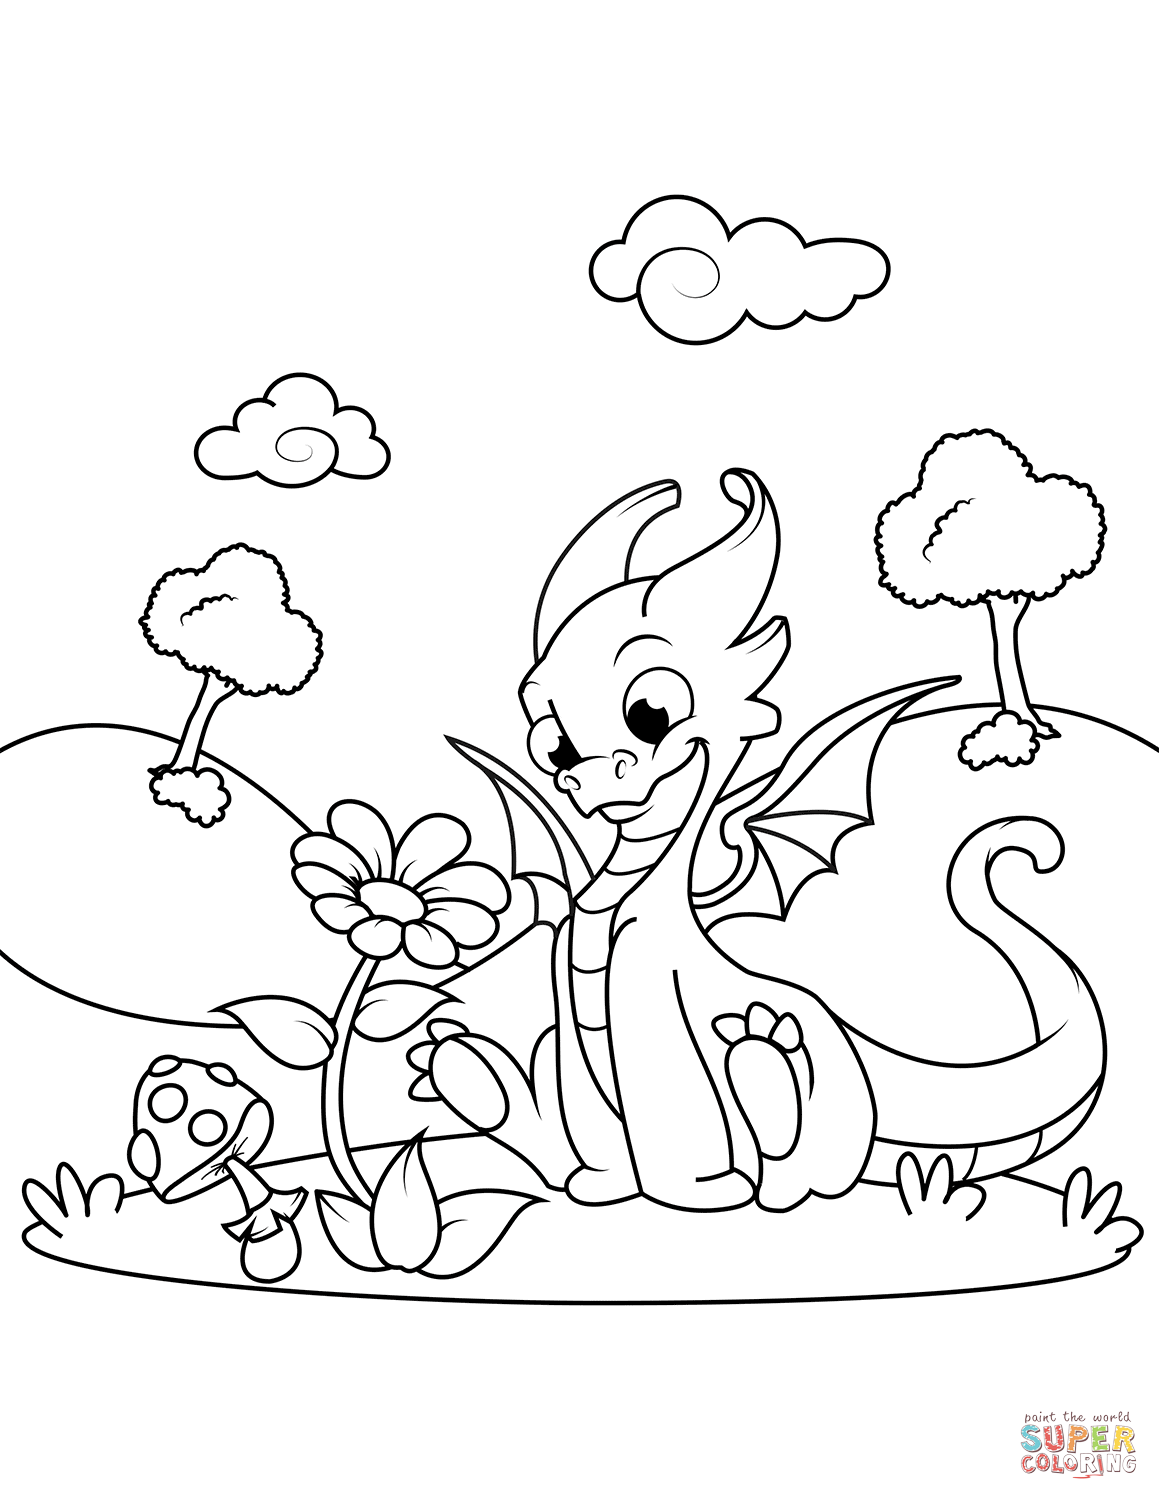 Cute Dragon Outline Drawing